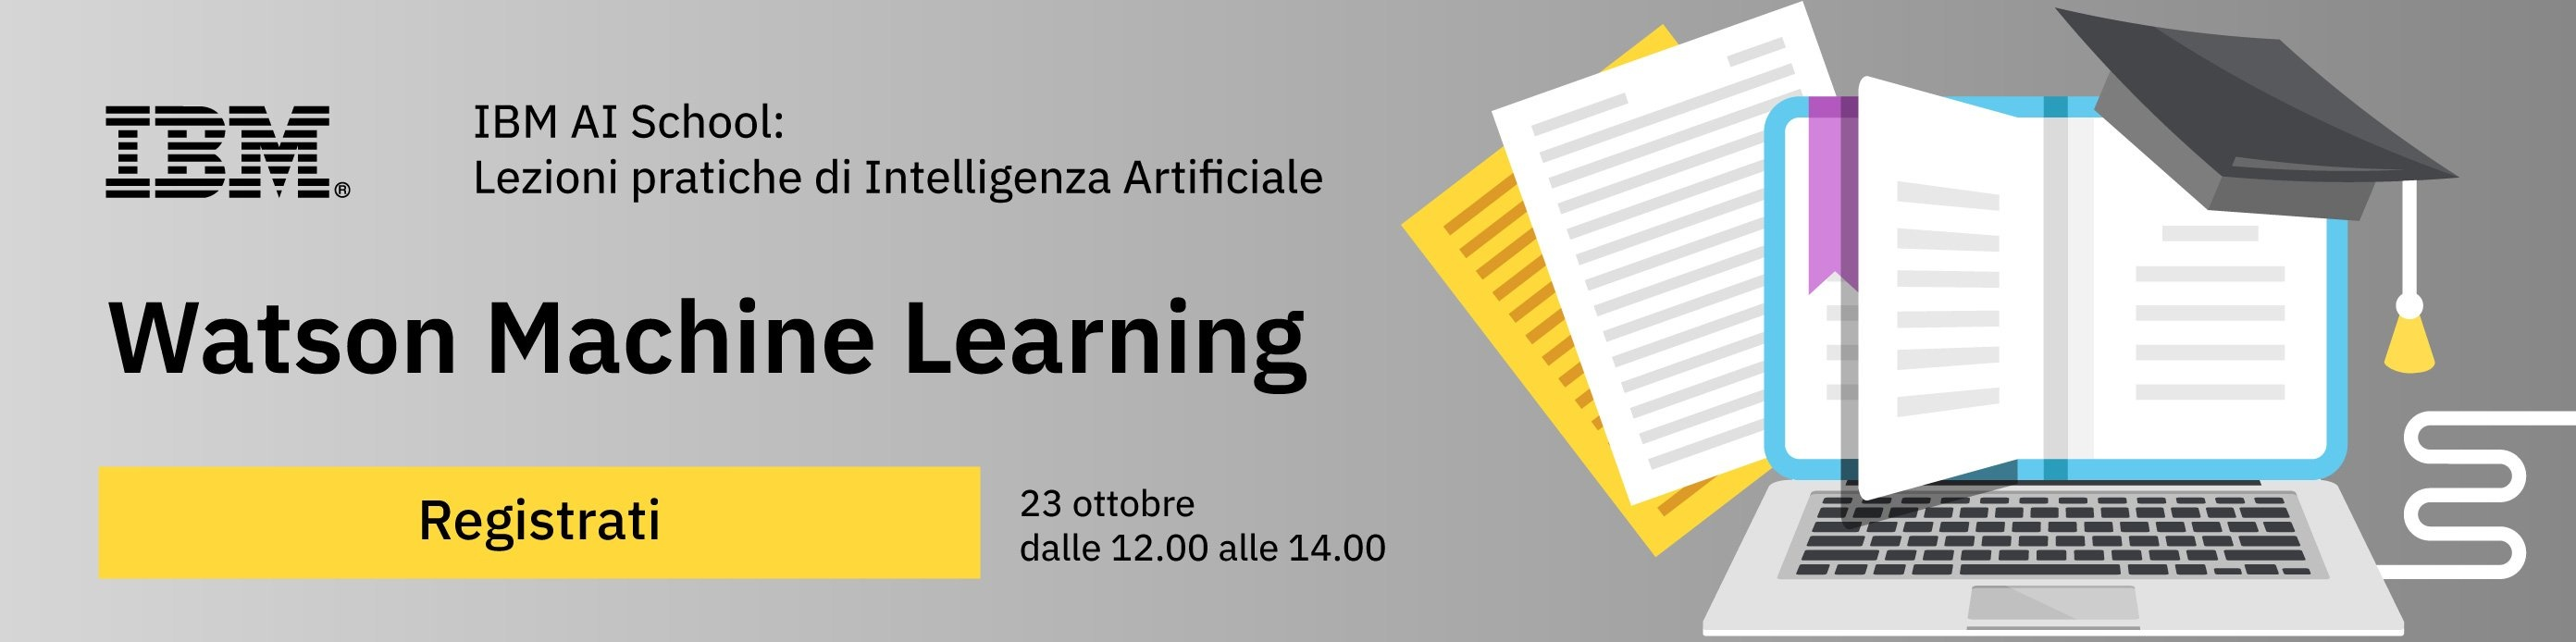 Watson Machine Learning - 23 ottobre - Registrati